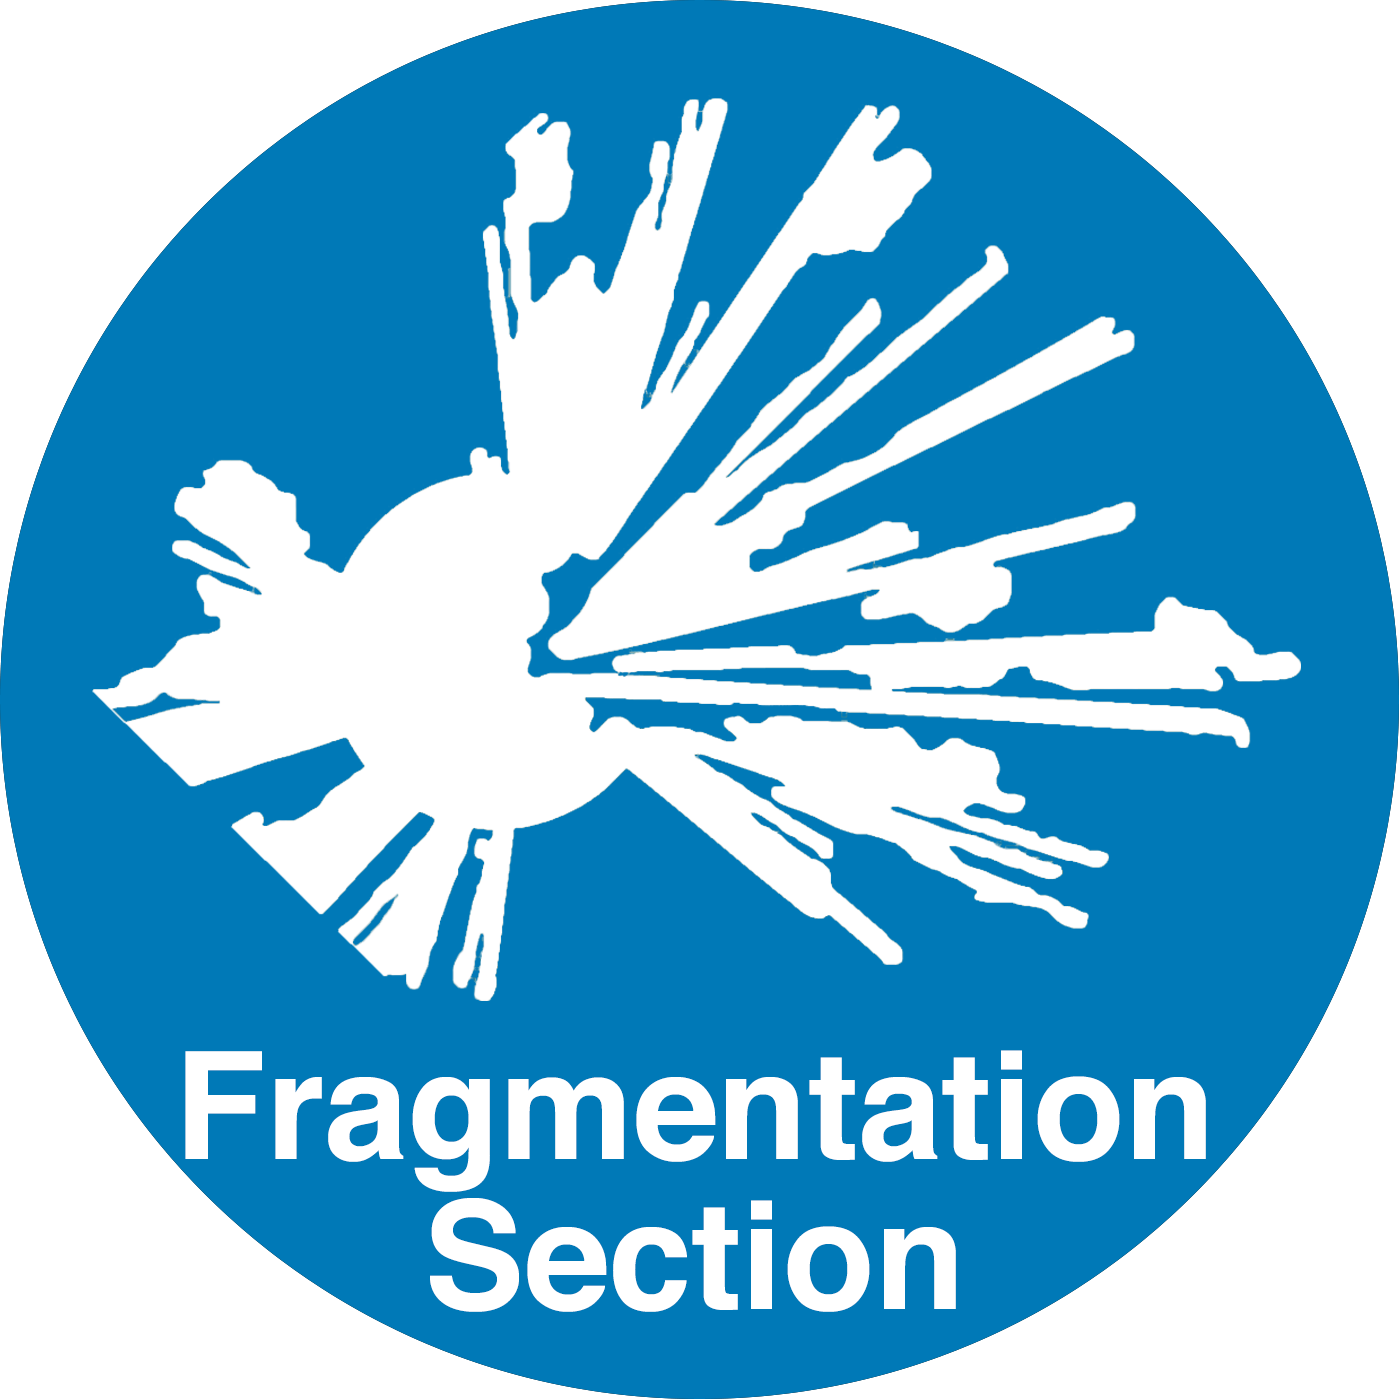 Fragmentation Section